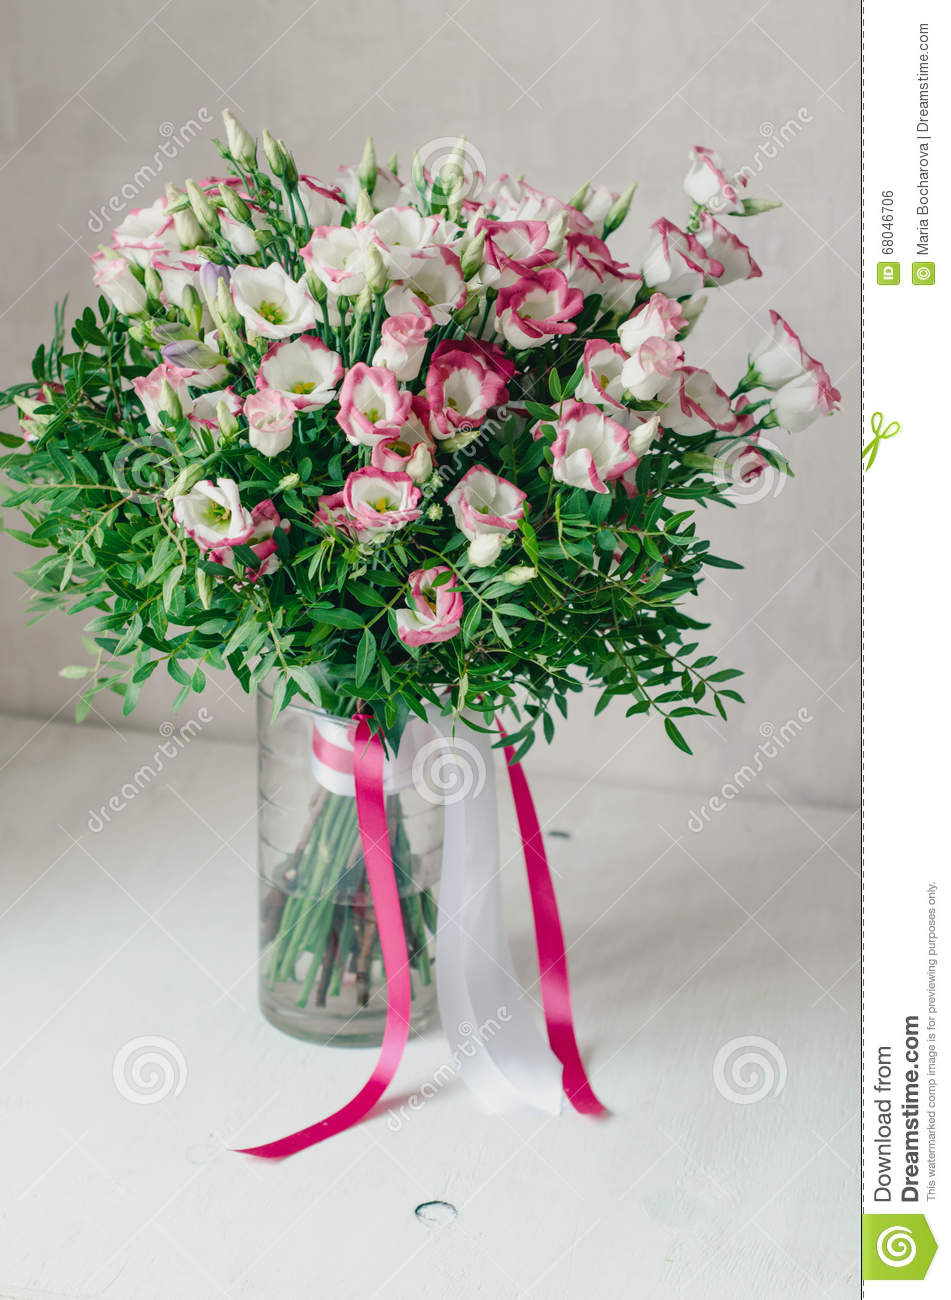 Beautiful Romantic Bouquet Of Pink And White Eustoma Flowers With